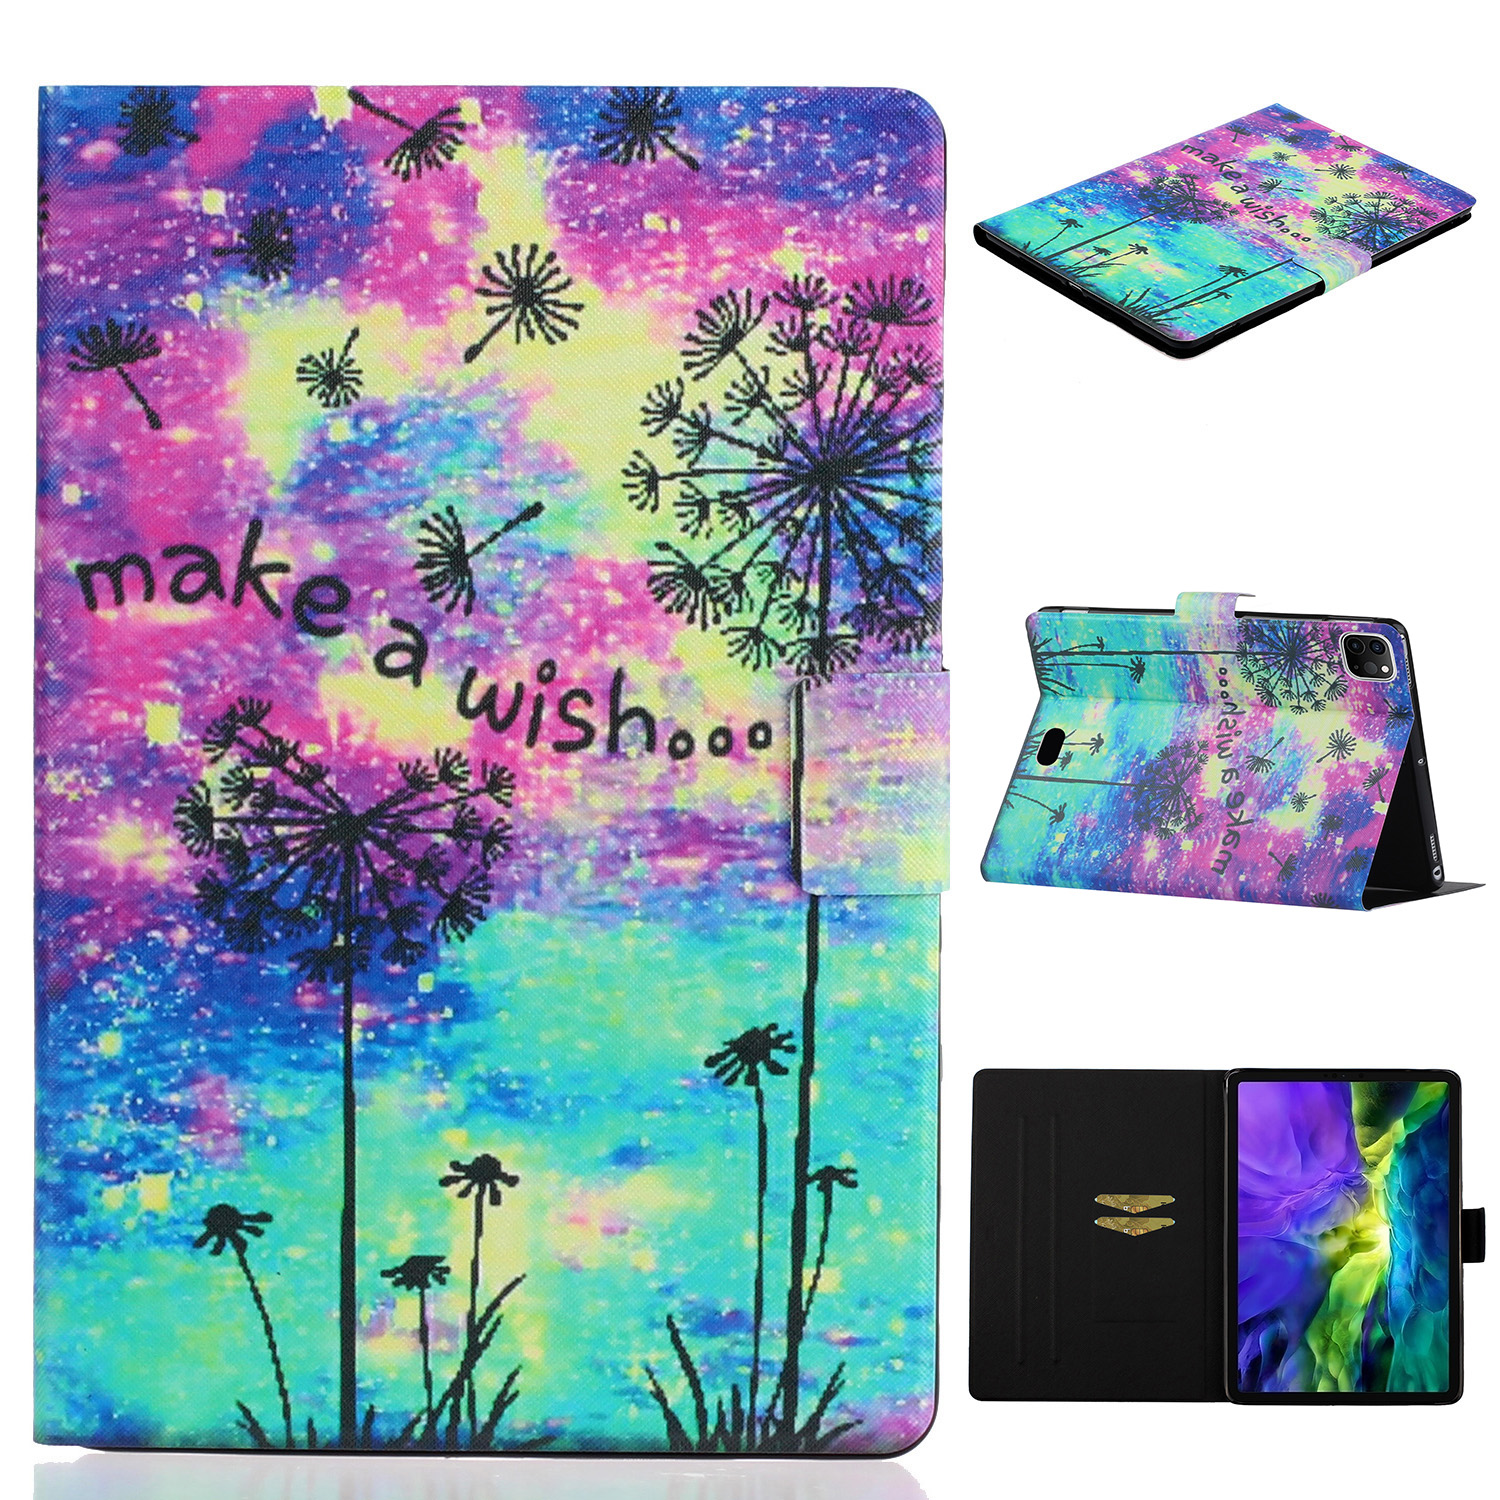 For iPad Pro 11 inch 2020 Case Cheap PU Leather Painted Smart Folio Case for iPad